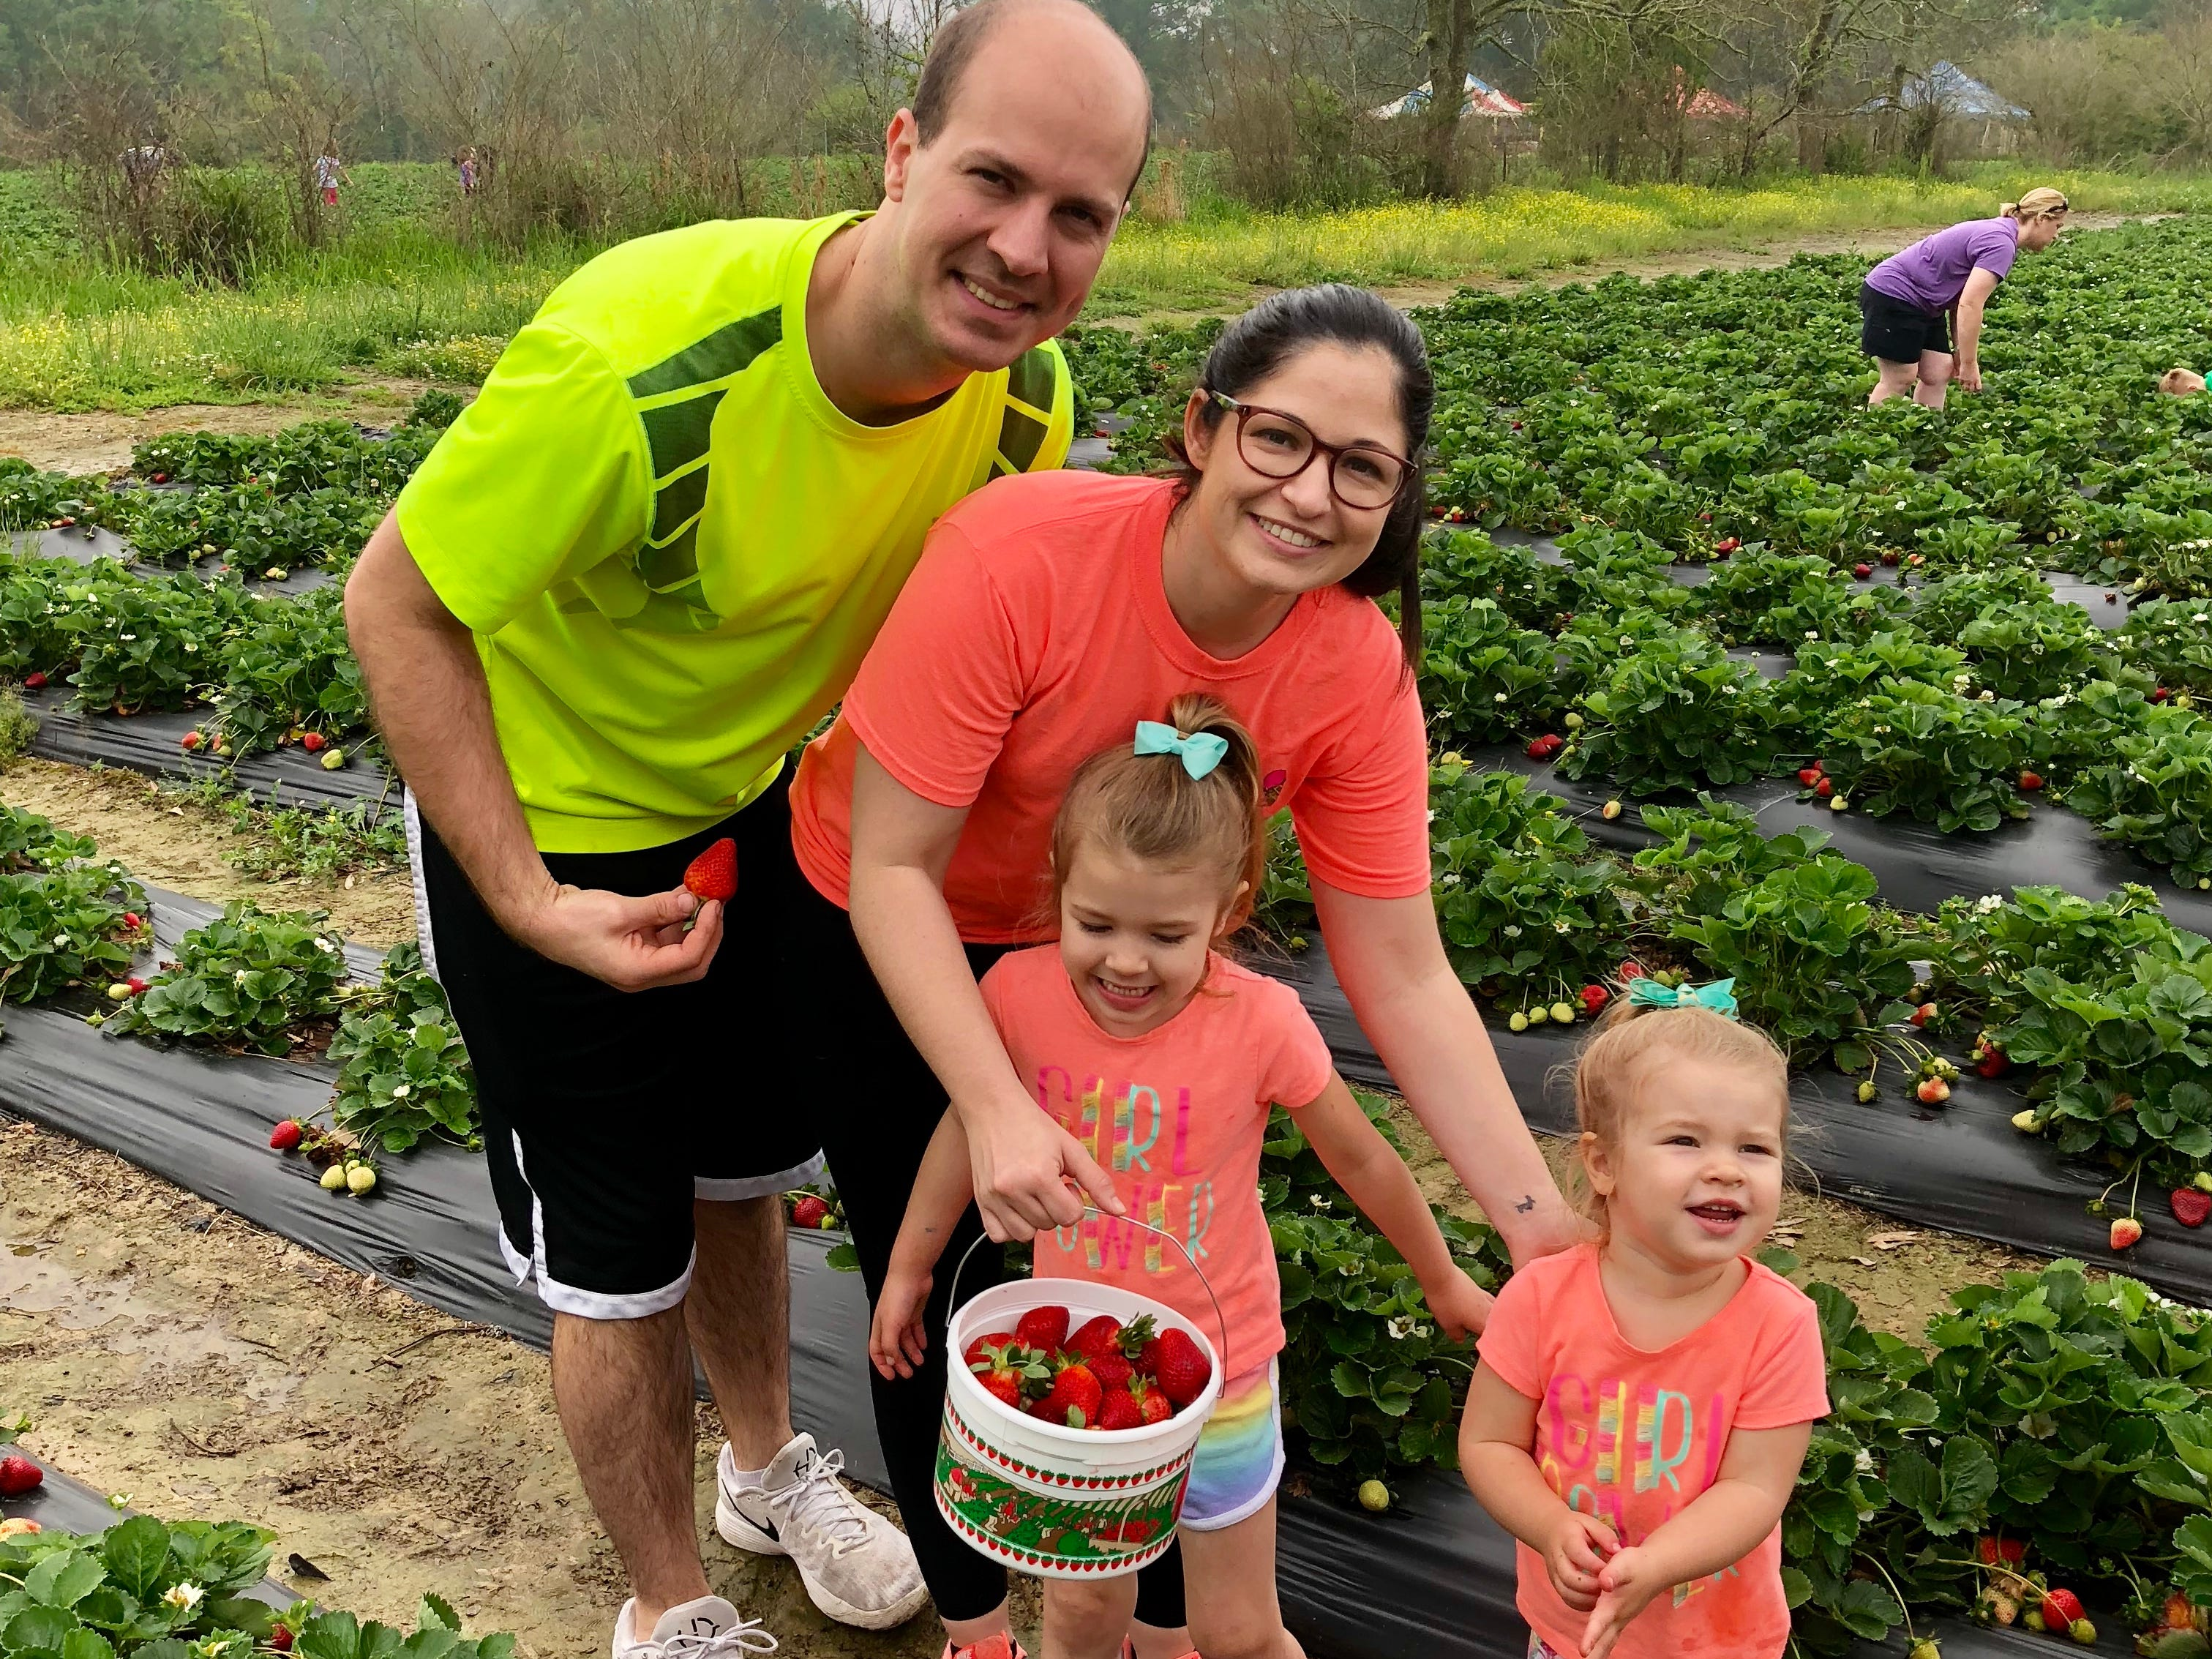 Reporter Leigh Guidry and family pick strawberries April 6 at Mrs. Heather's Strawberry Farm in Albany, Louisiana.